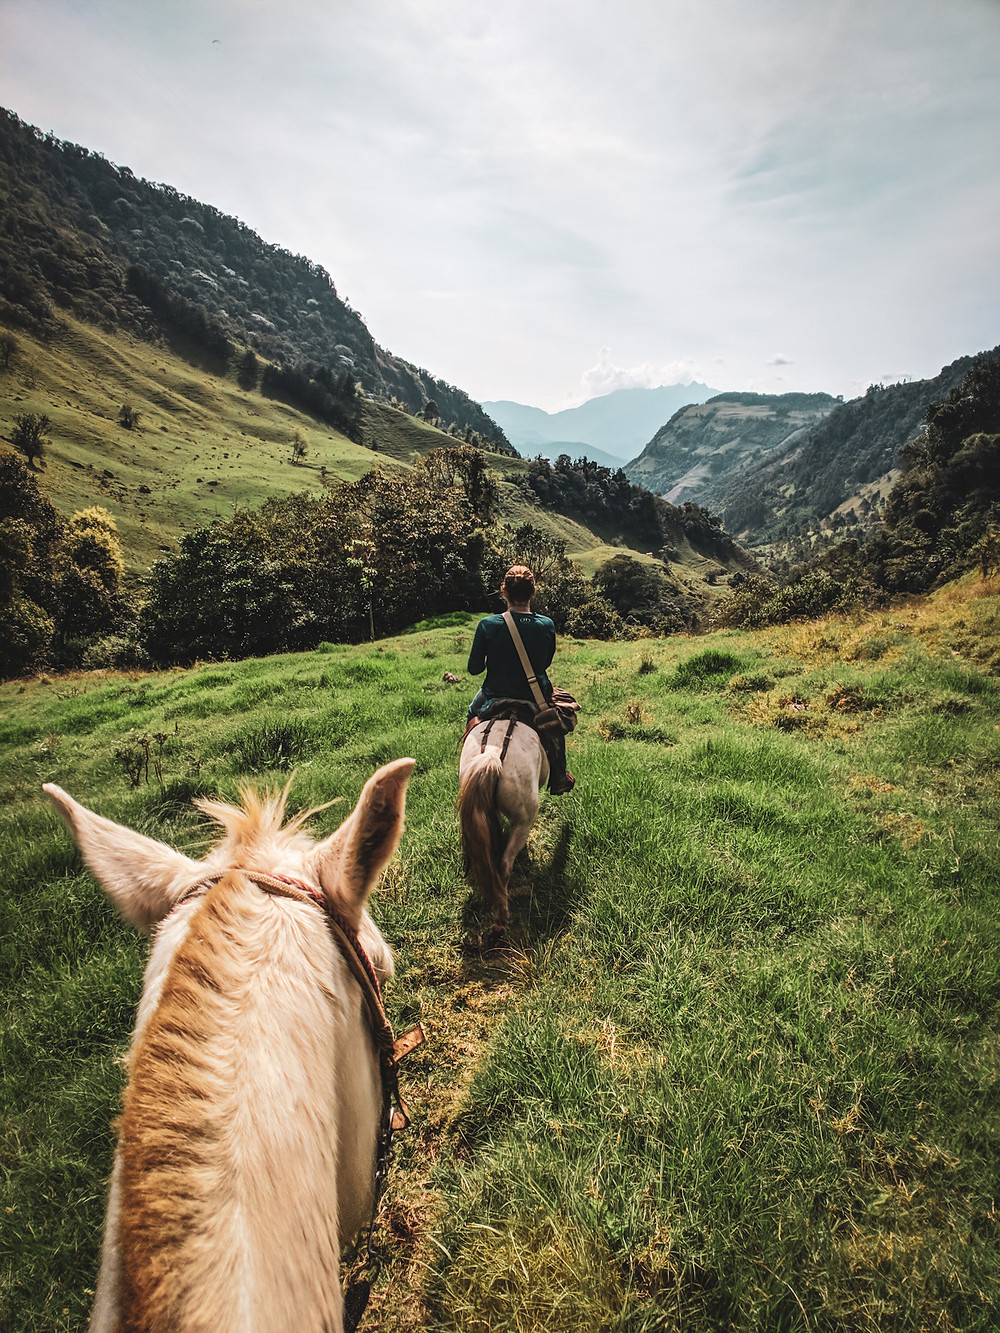 Epic mountain views while horseback riding in Jardin, Colombia.